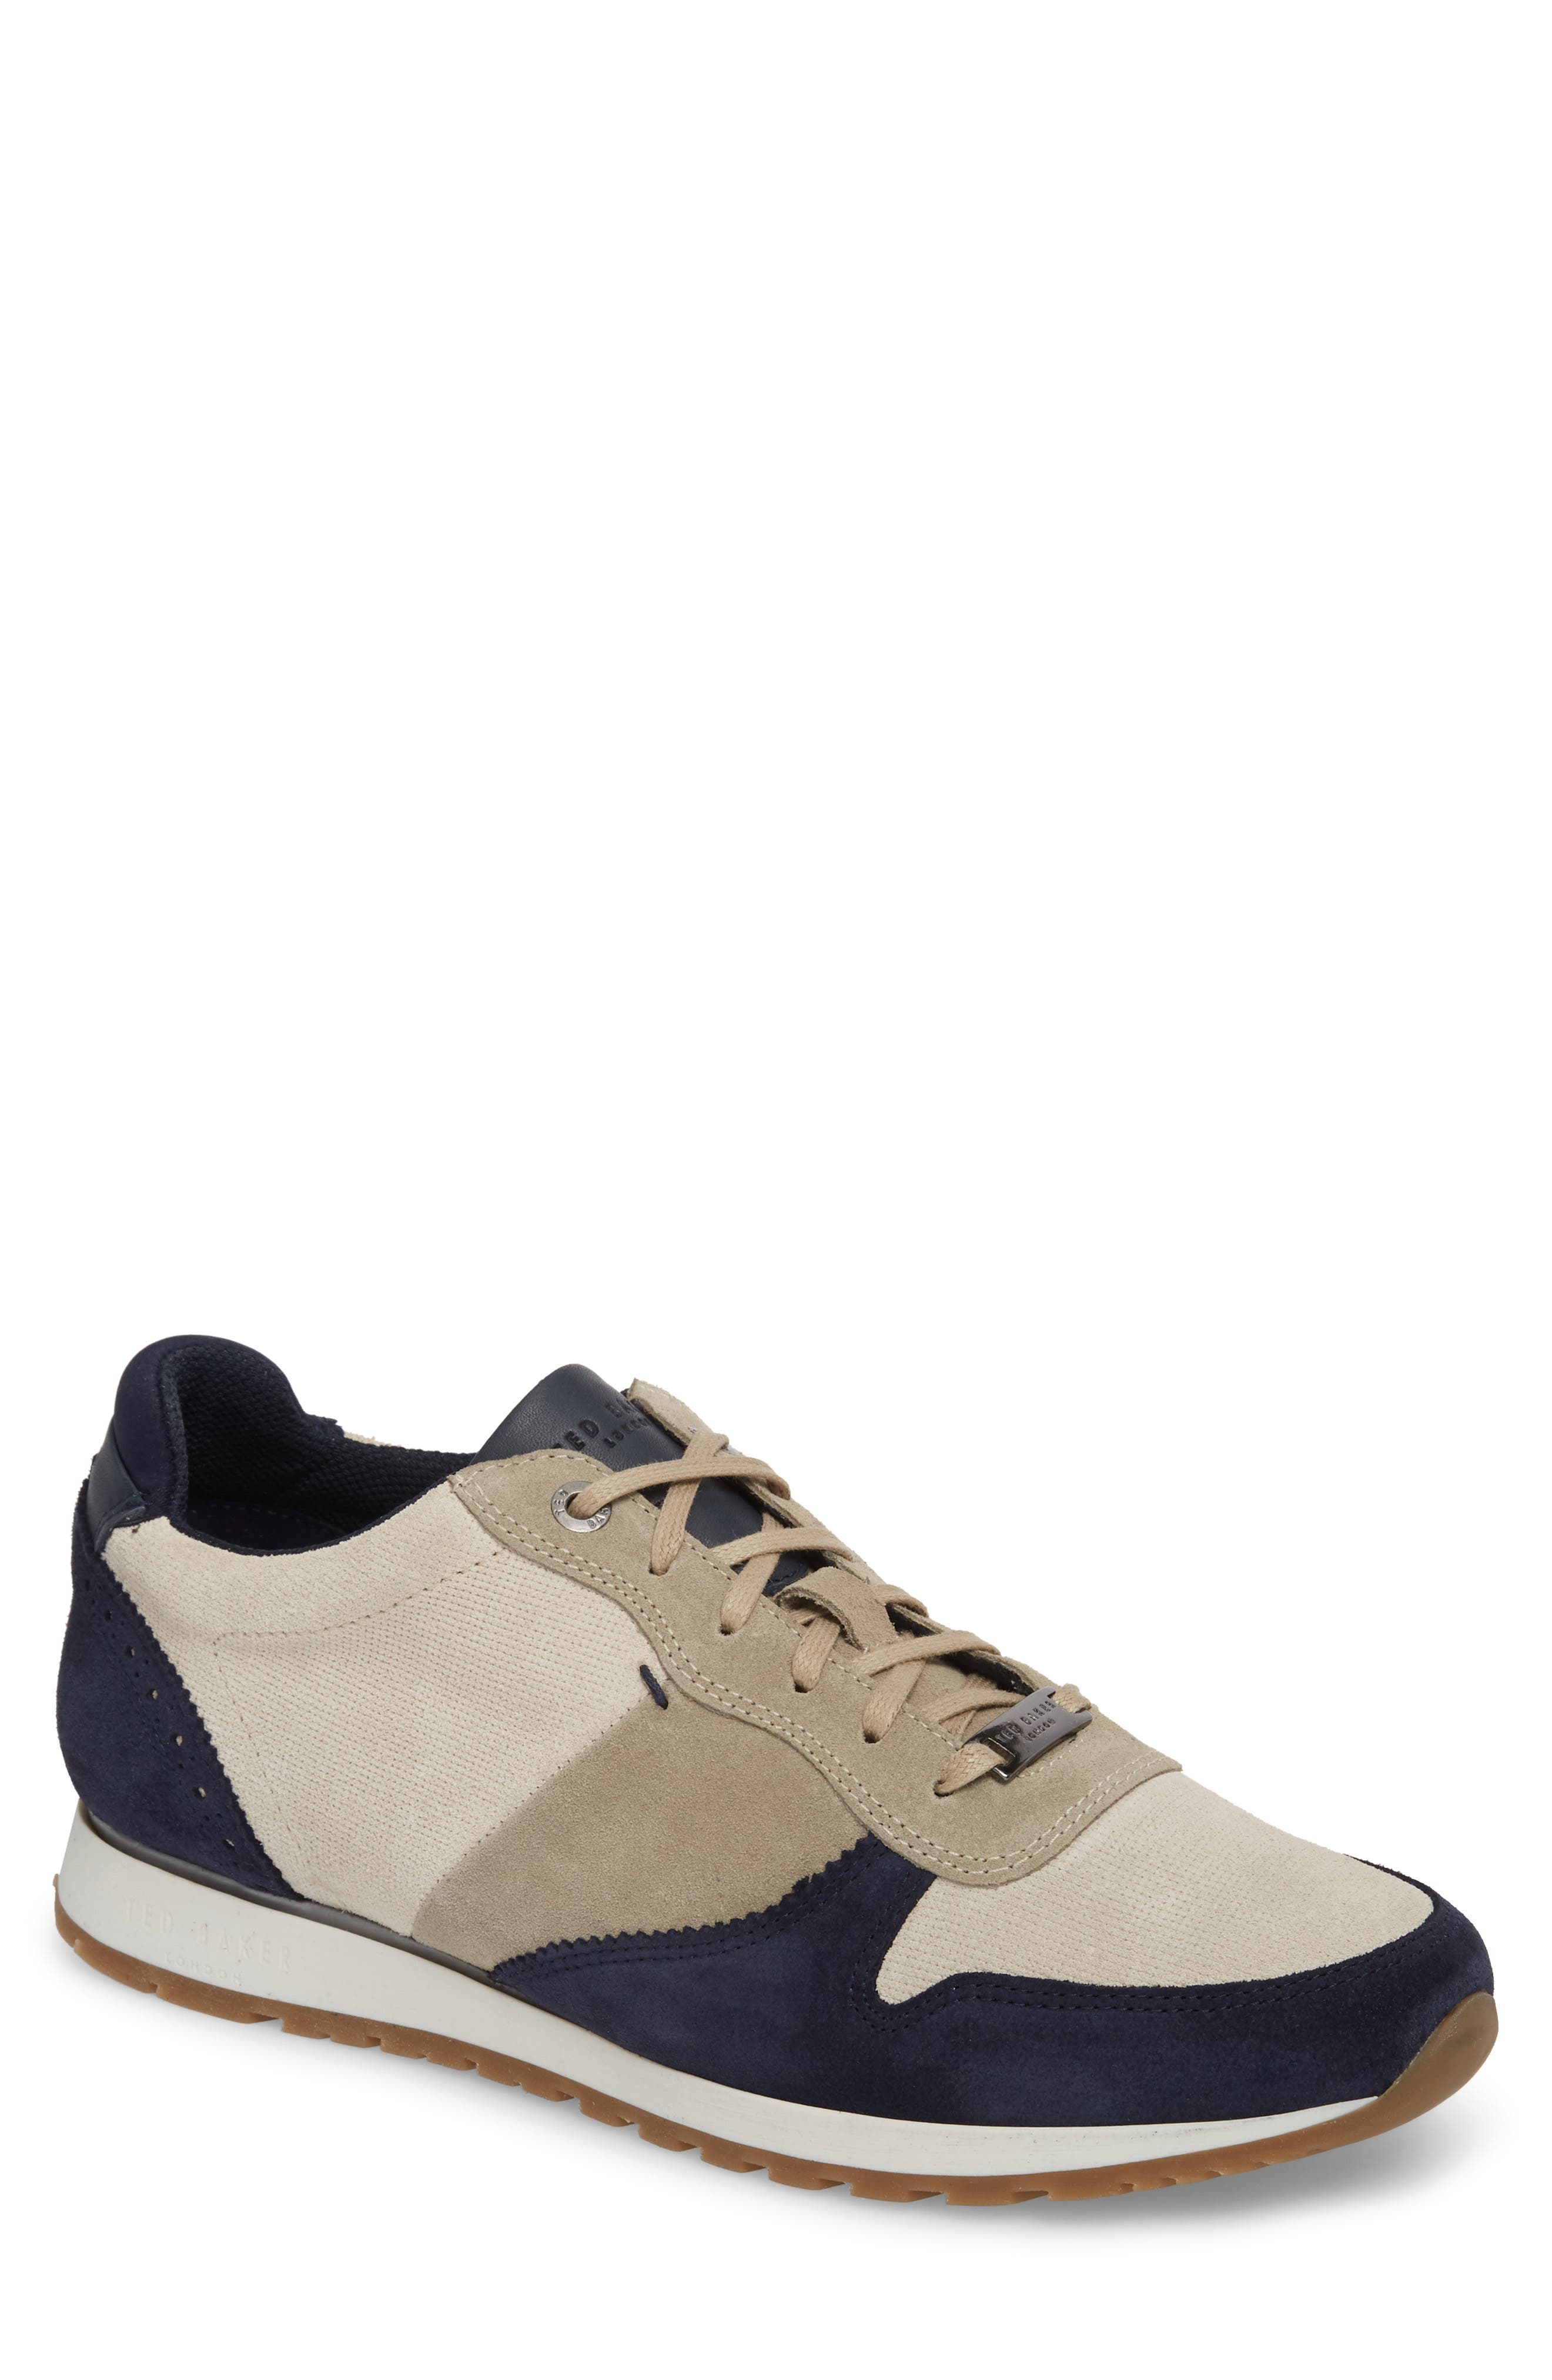 Shindls Low Top Sneaker,                         Main,                         color, Dark Blue/ Grey Leather/ Suede